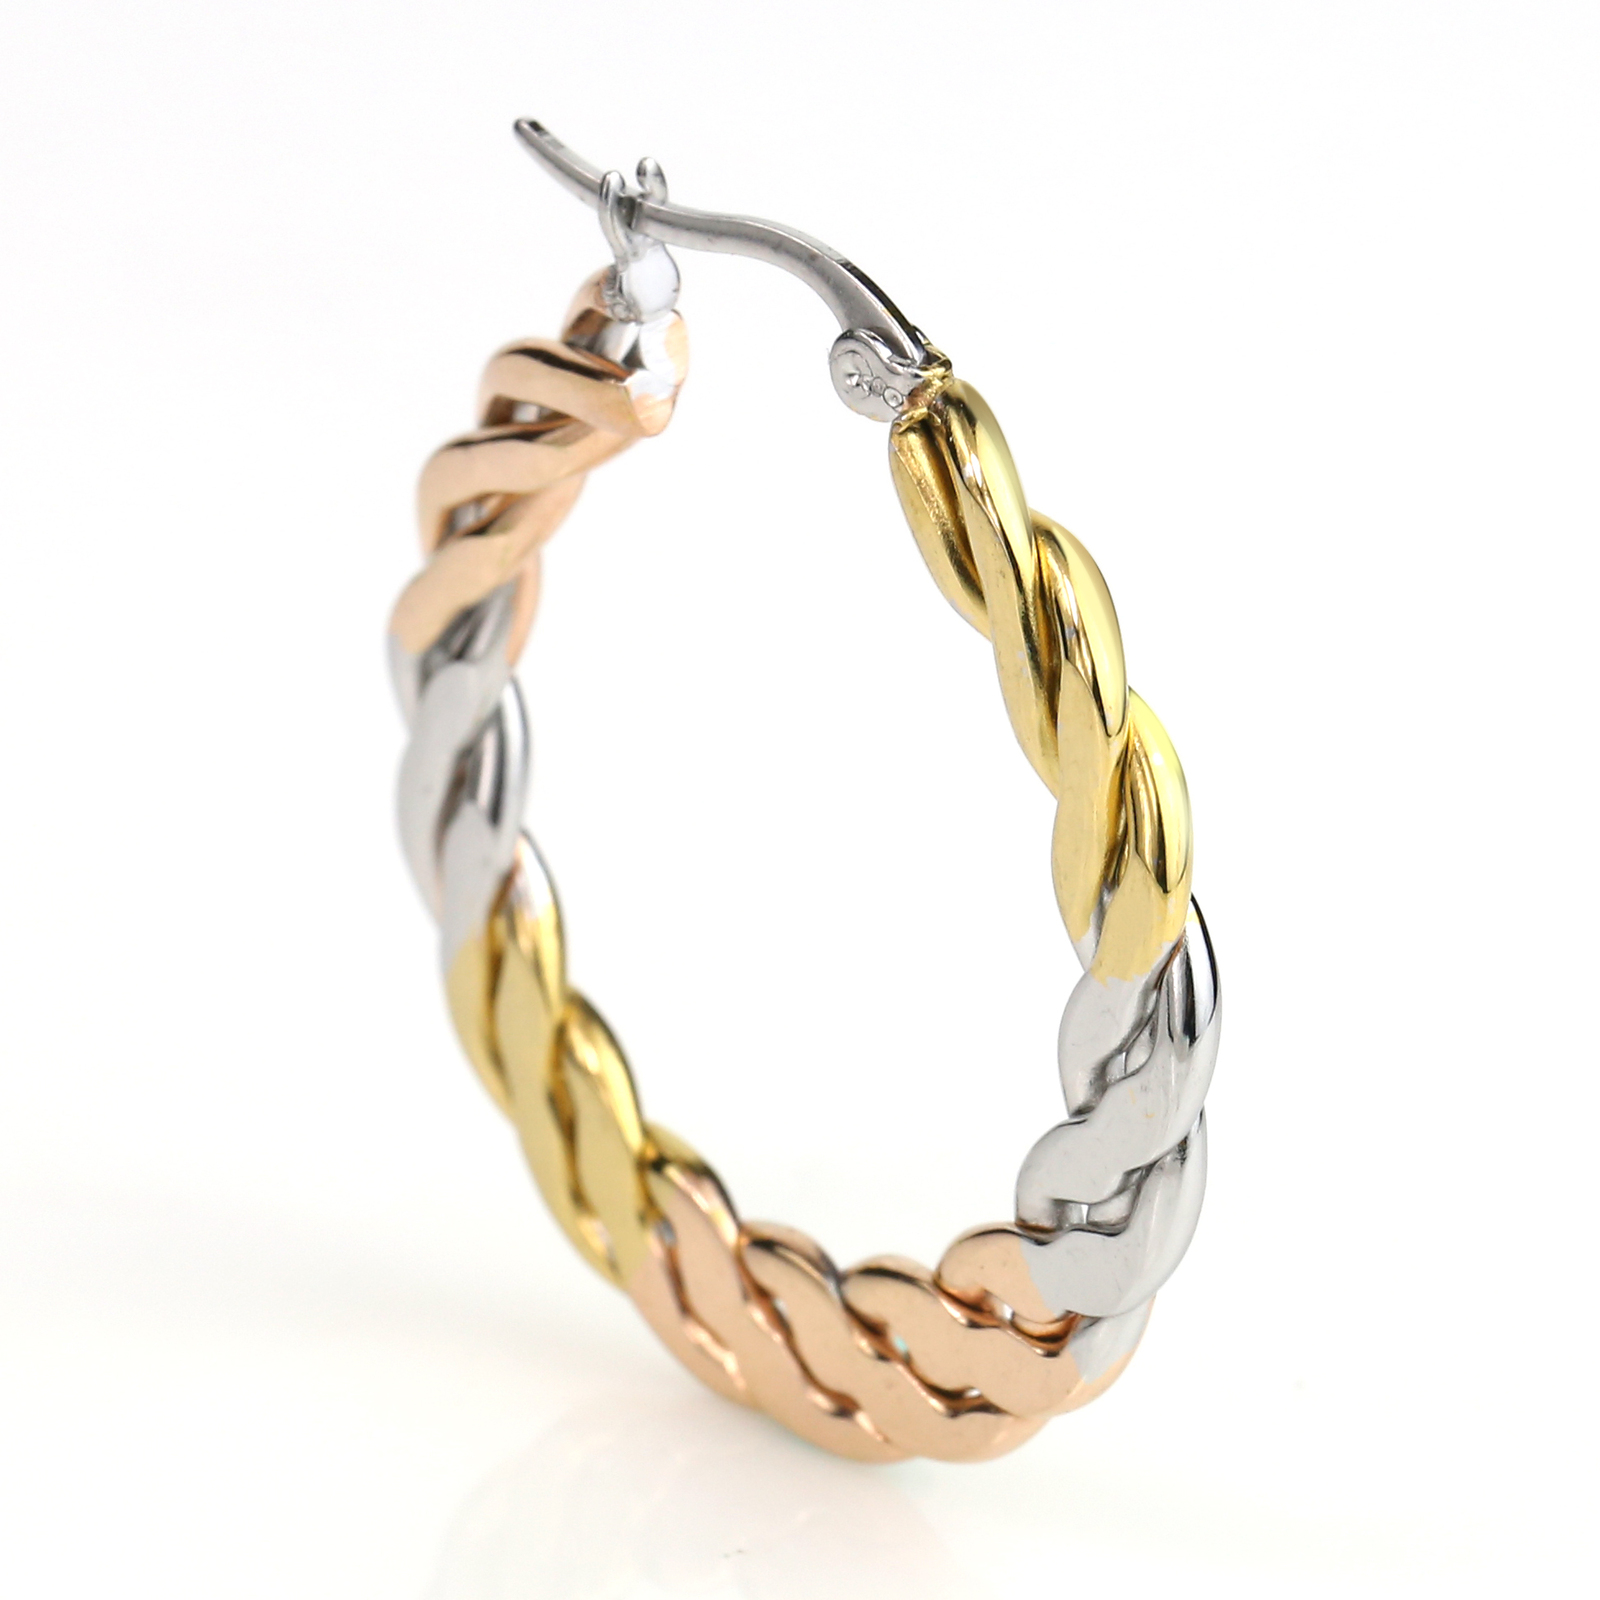 Interwoven Tri-Color Silver, Gold & Rose Tone Hoop Earrings- United Elegance